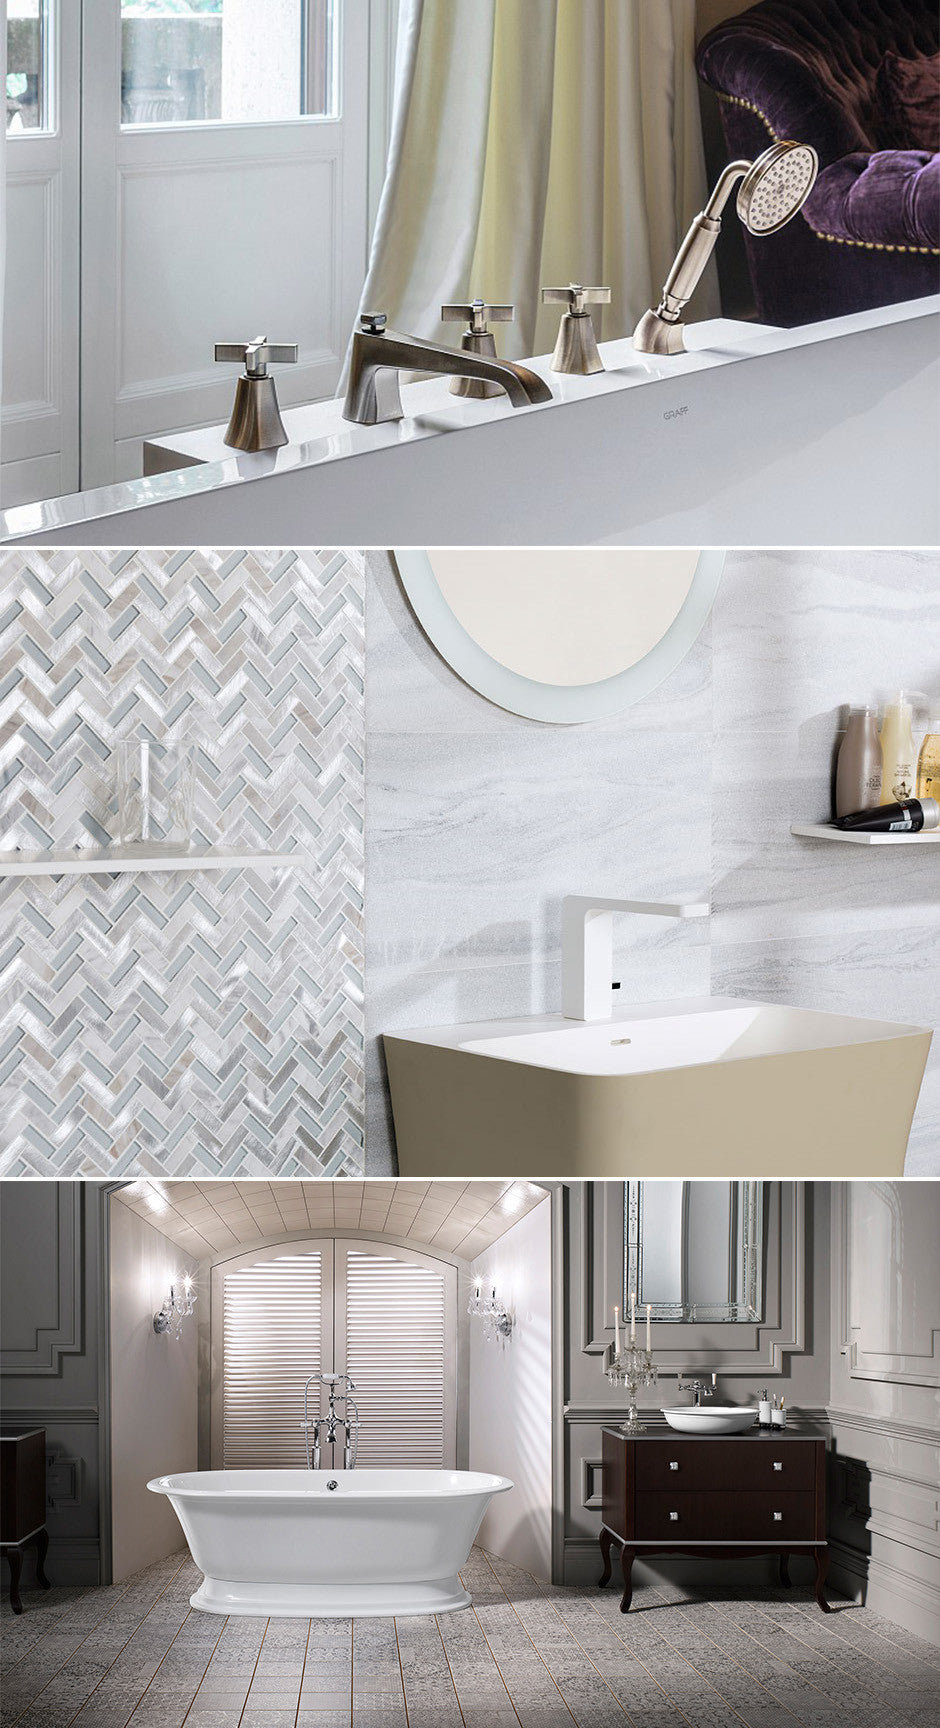 Canaroma, Vaughan, ON : A Destination Showroom for Bath, Tile ...